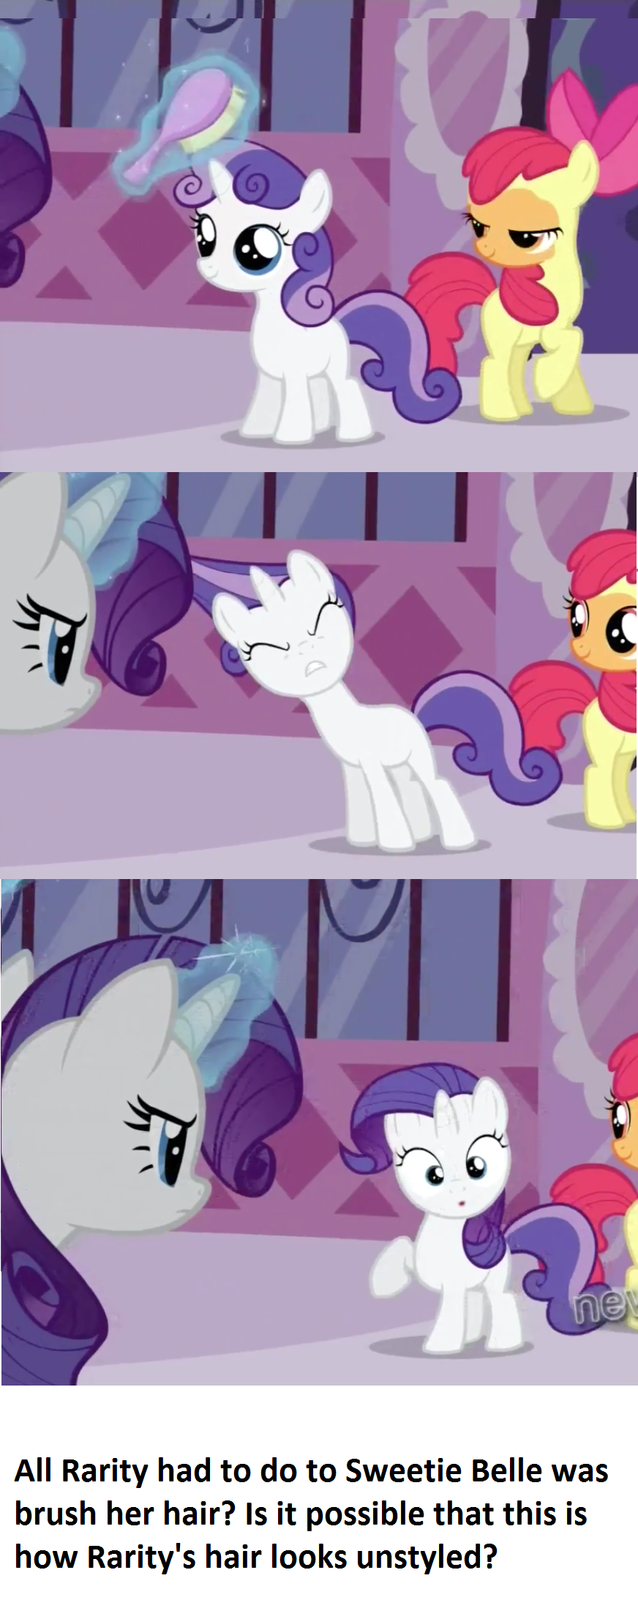 Rarity's hair